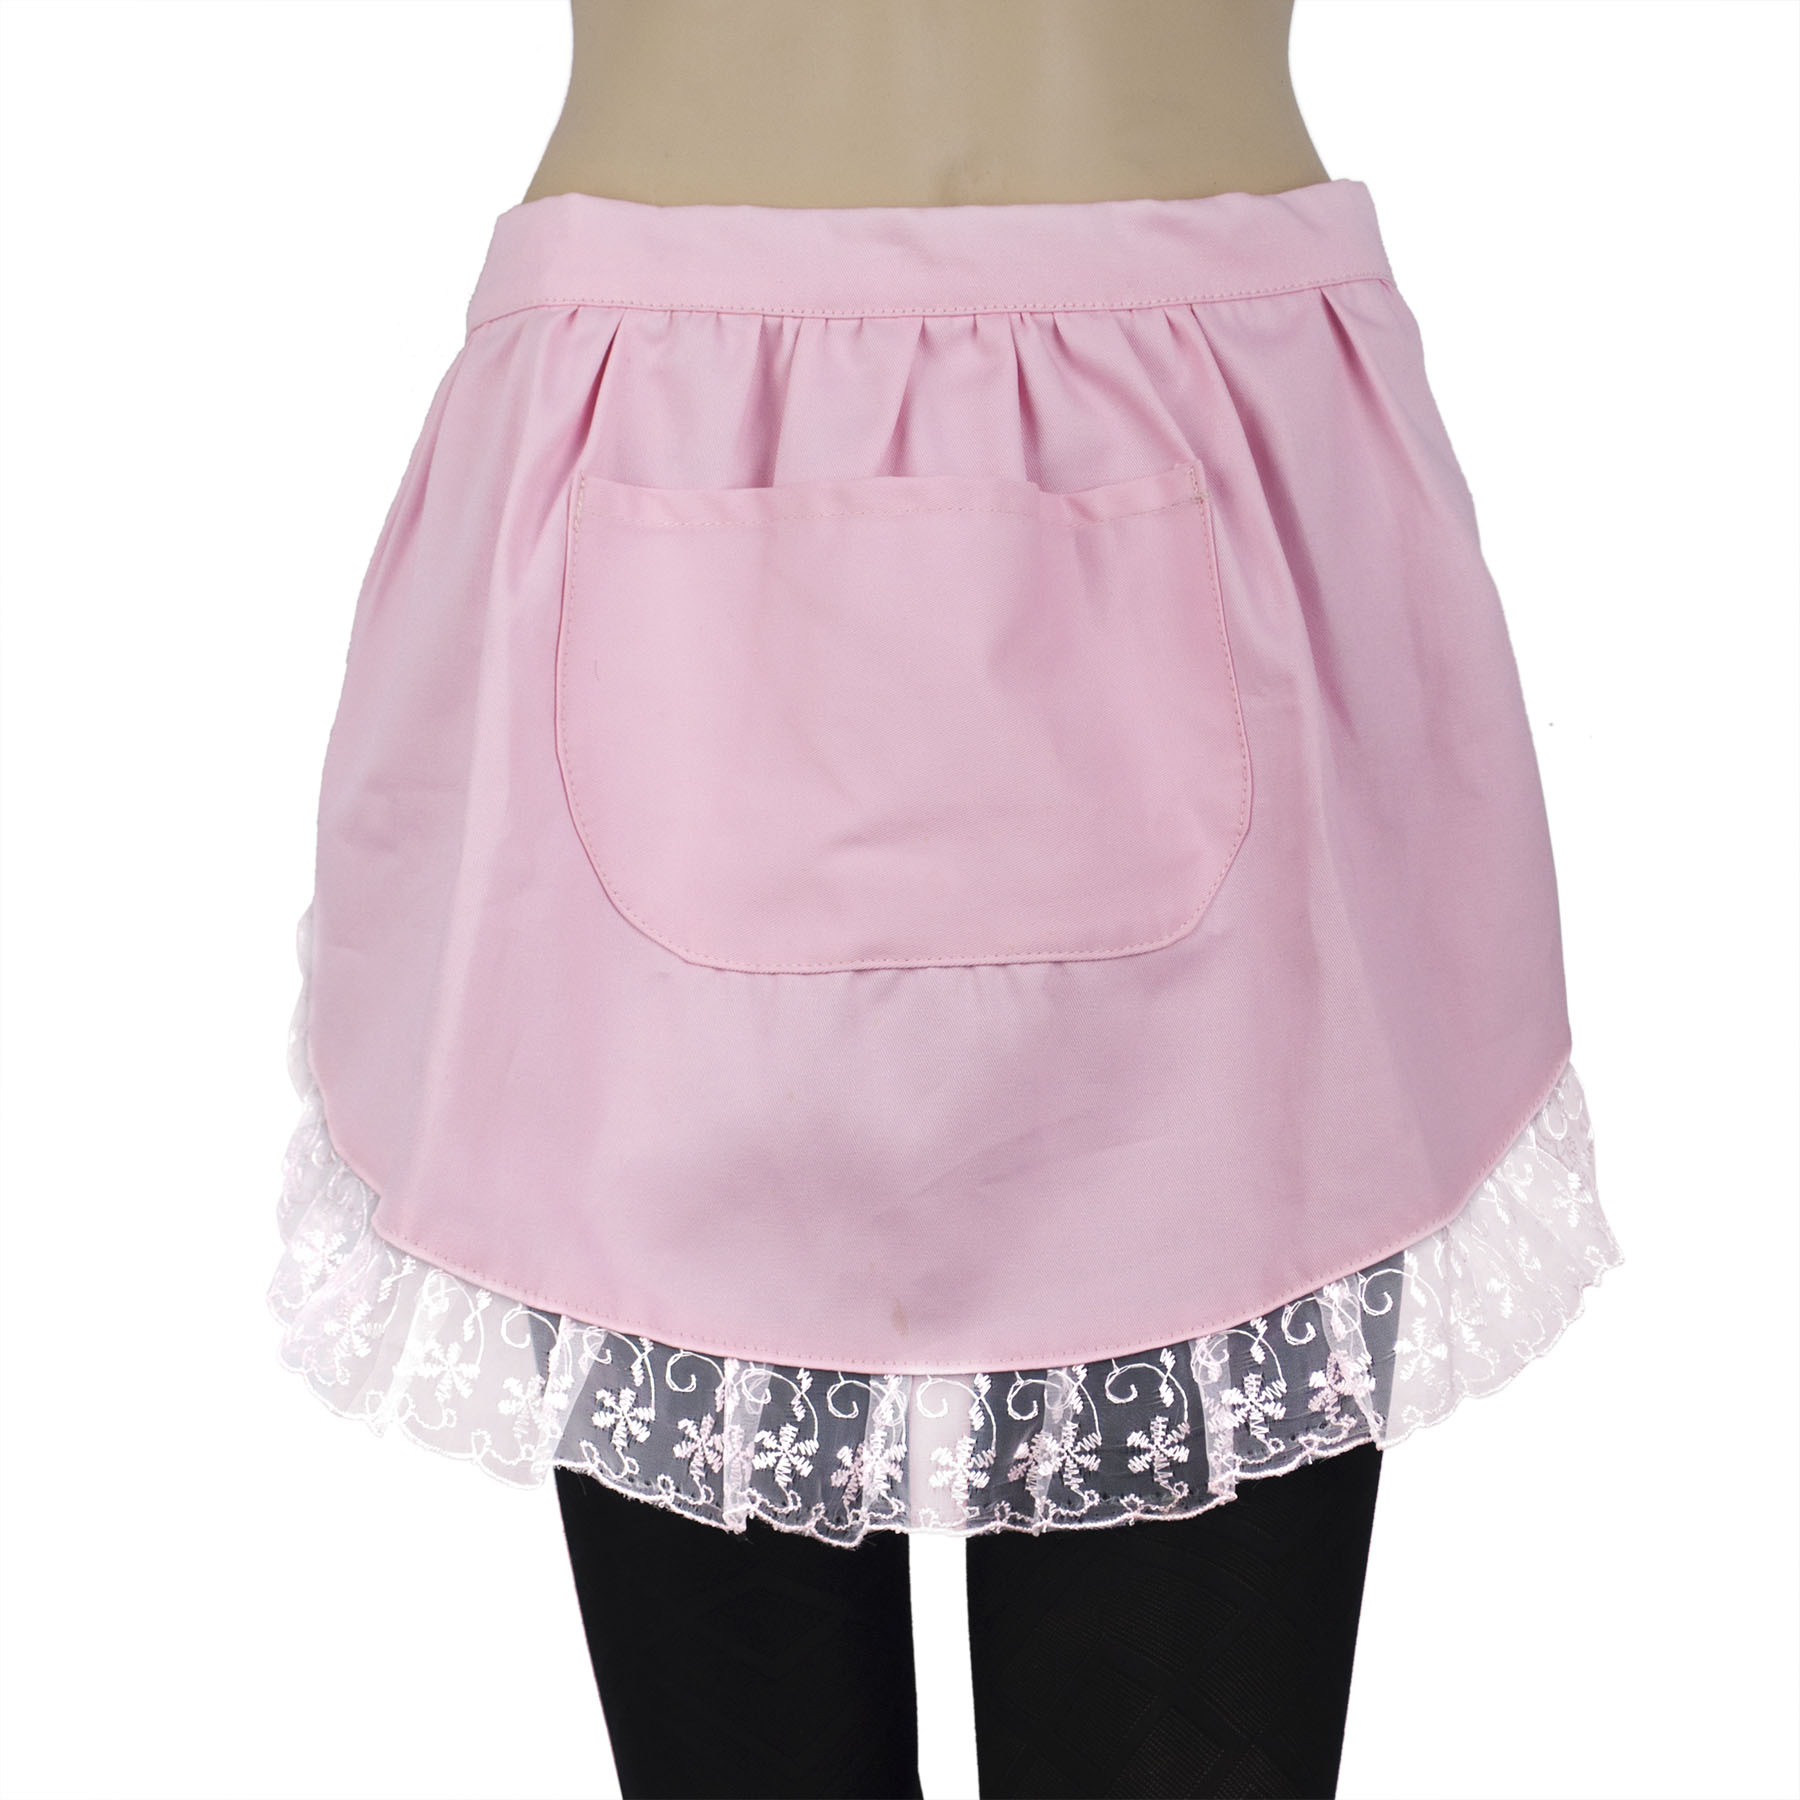 Aspire Lace Adult Half Apron, Cotton Cooking Apron Perfect for Coffee House with Pocket-Pink-M